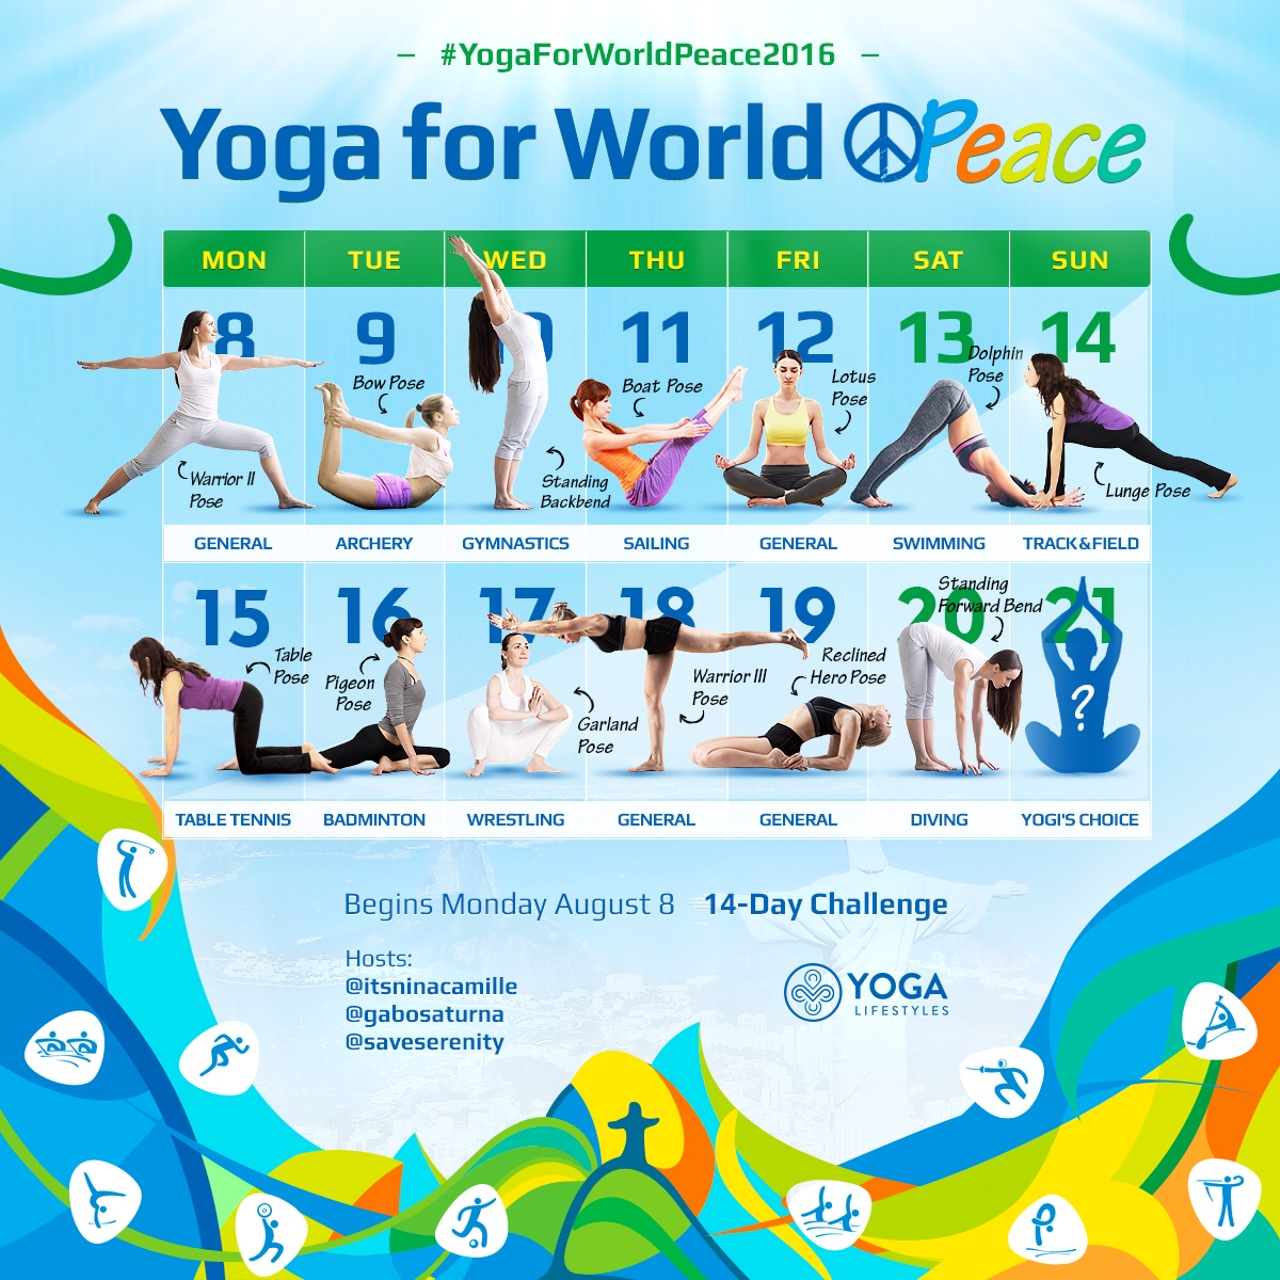 14- Day Instagram Challenge #YogaForWorldPeace2016   Role :Creator, producer, writer   Client:  Yoga Lifestyles   Objective : Increase followers by 10% by invite audience to participate in challenge, where they publish daily posts to Instagram. Each pose tied into an Olympic game during the 2016 summer Olympics to inspire world peace and unity across cultures combine interests.   Results:  more than 2,000 new hashtags and a 16% increase in followers